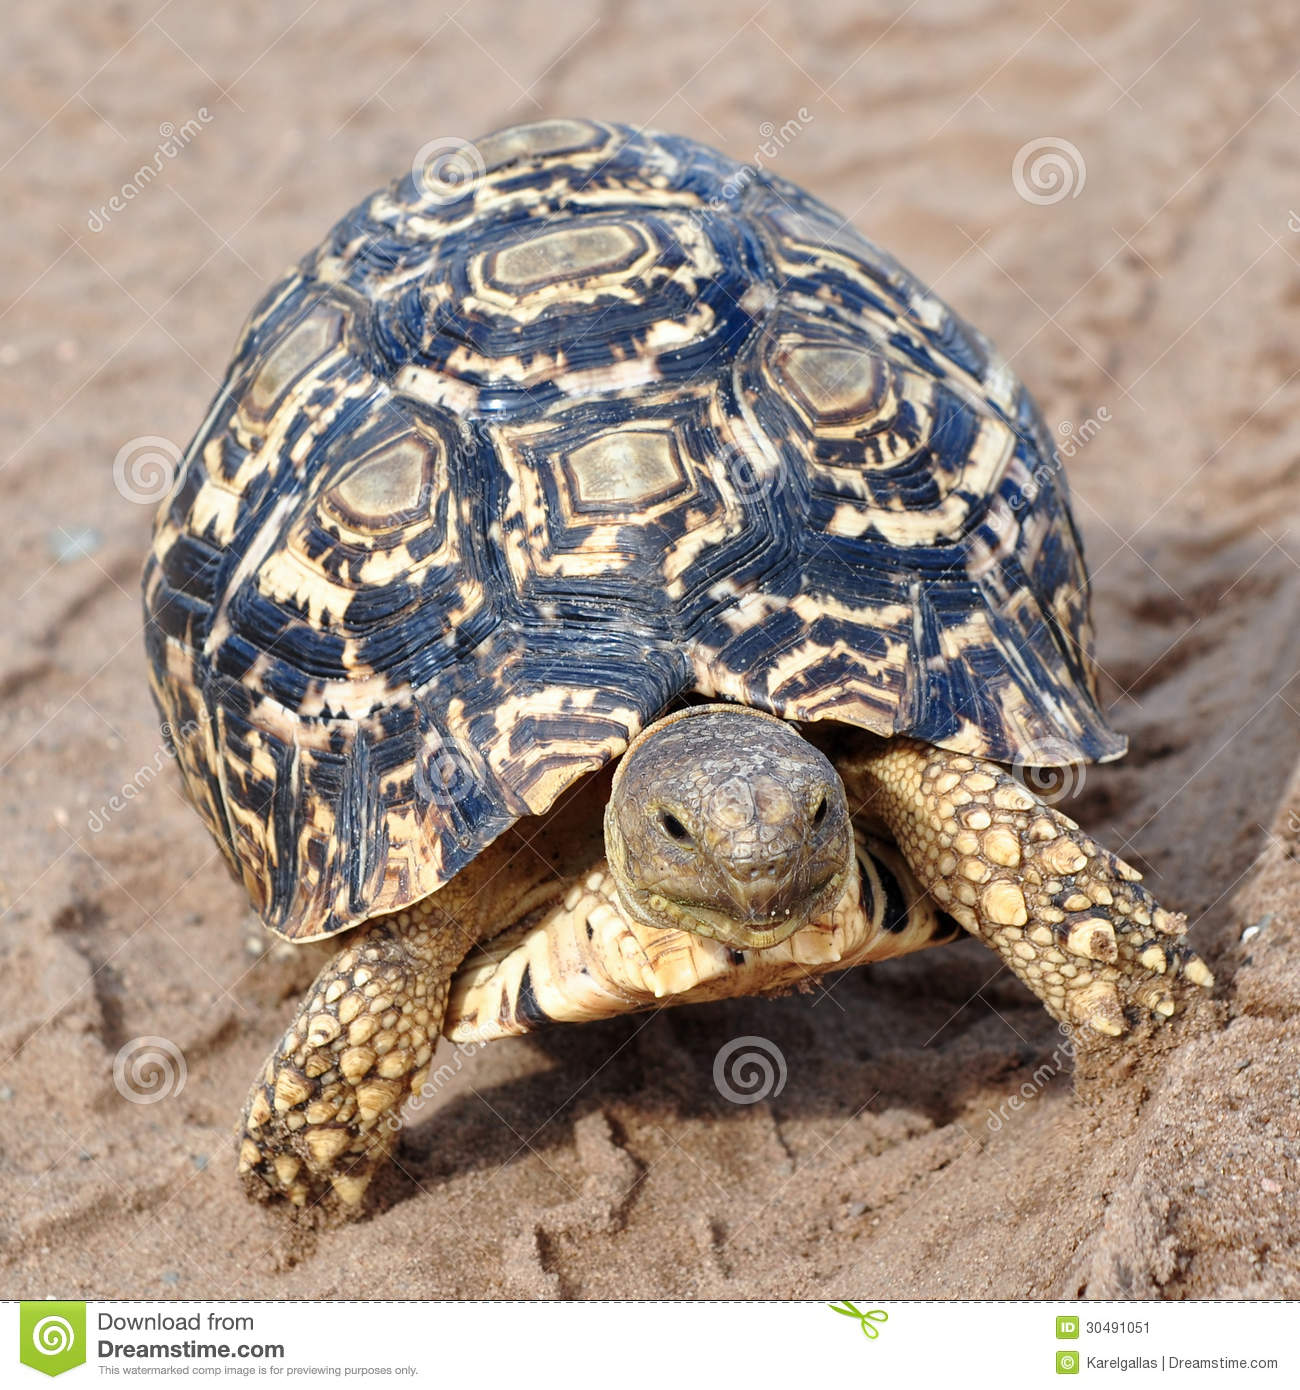 Leopard Tortoise clipart #16, Download drawings